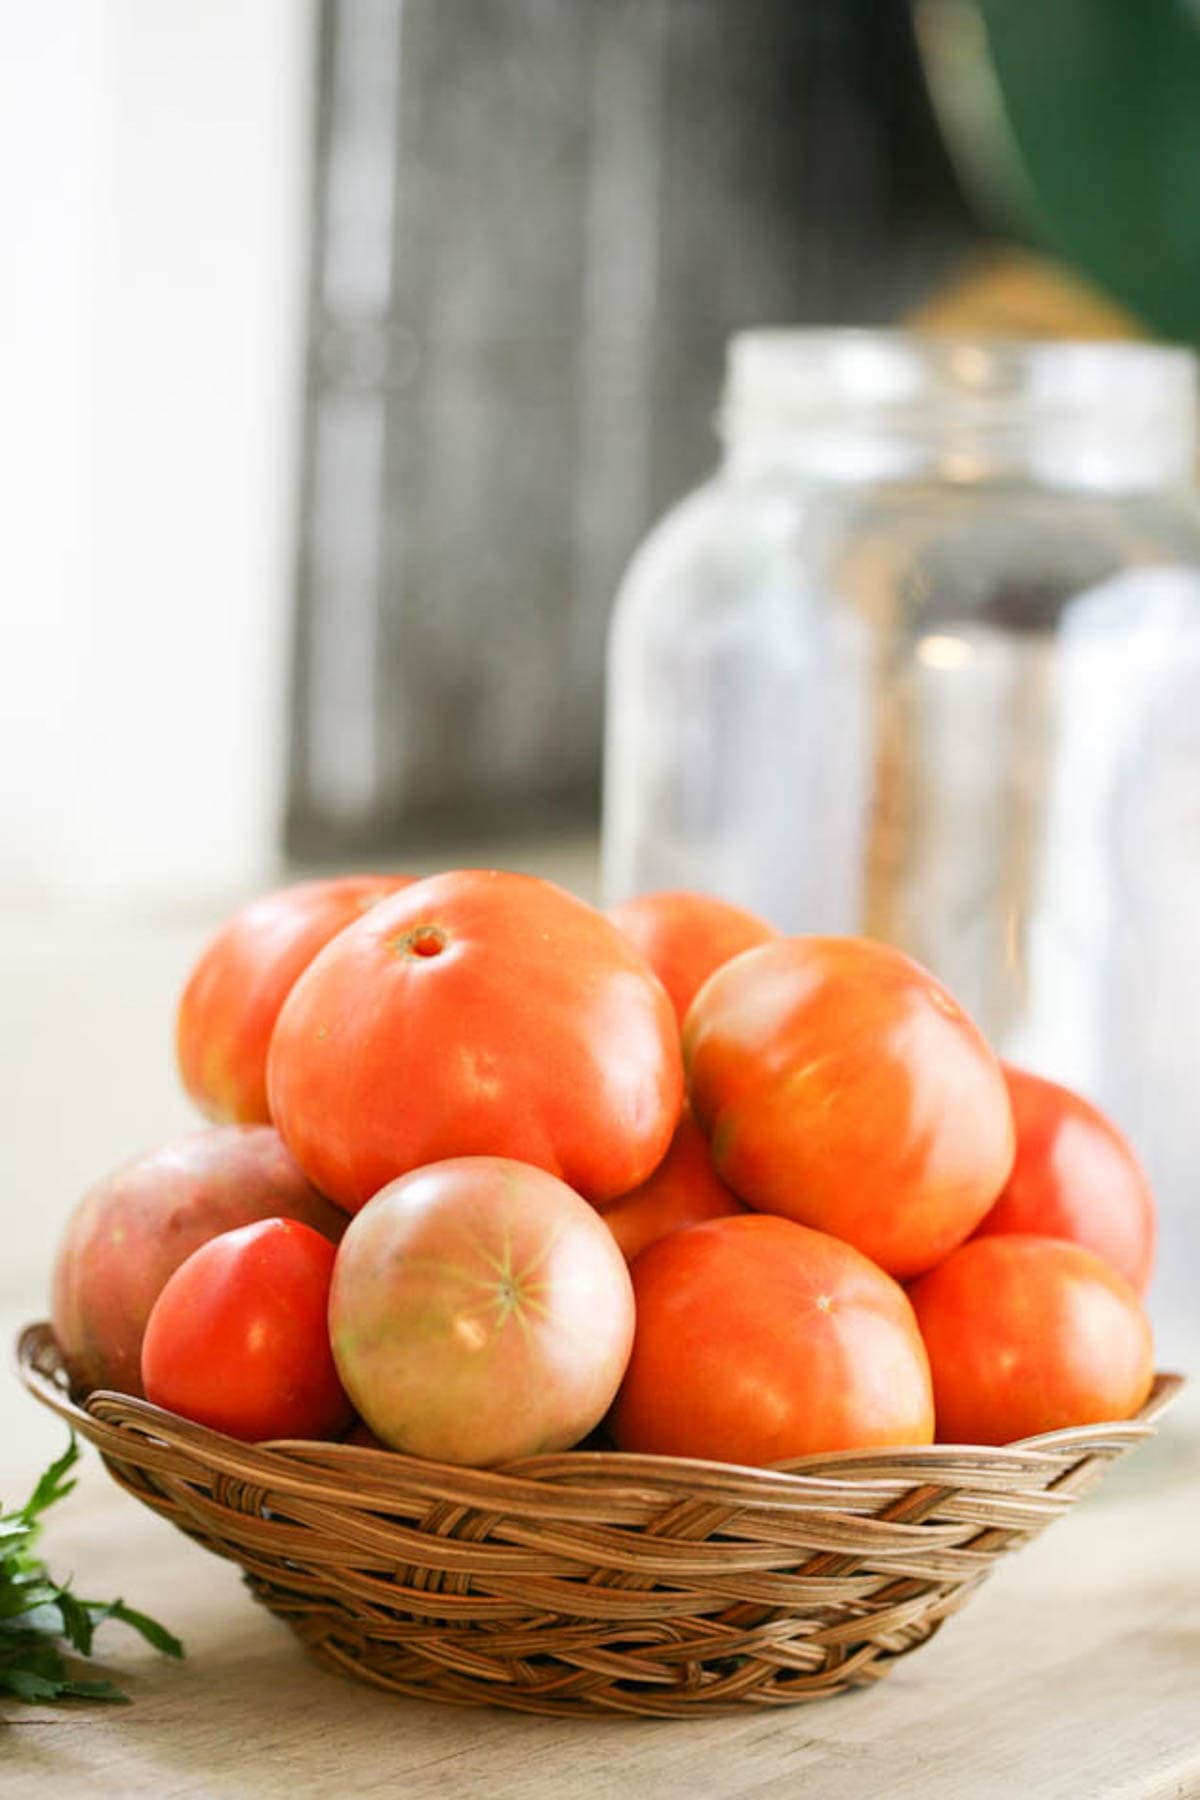 A basket of tomatoes.